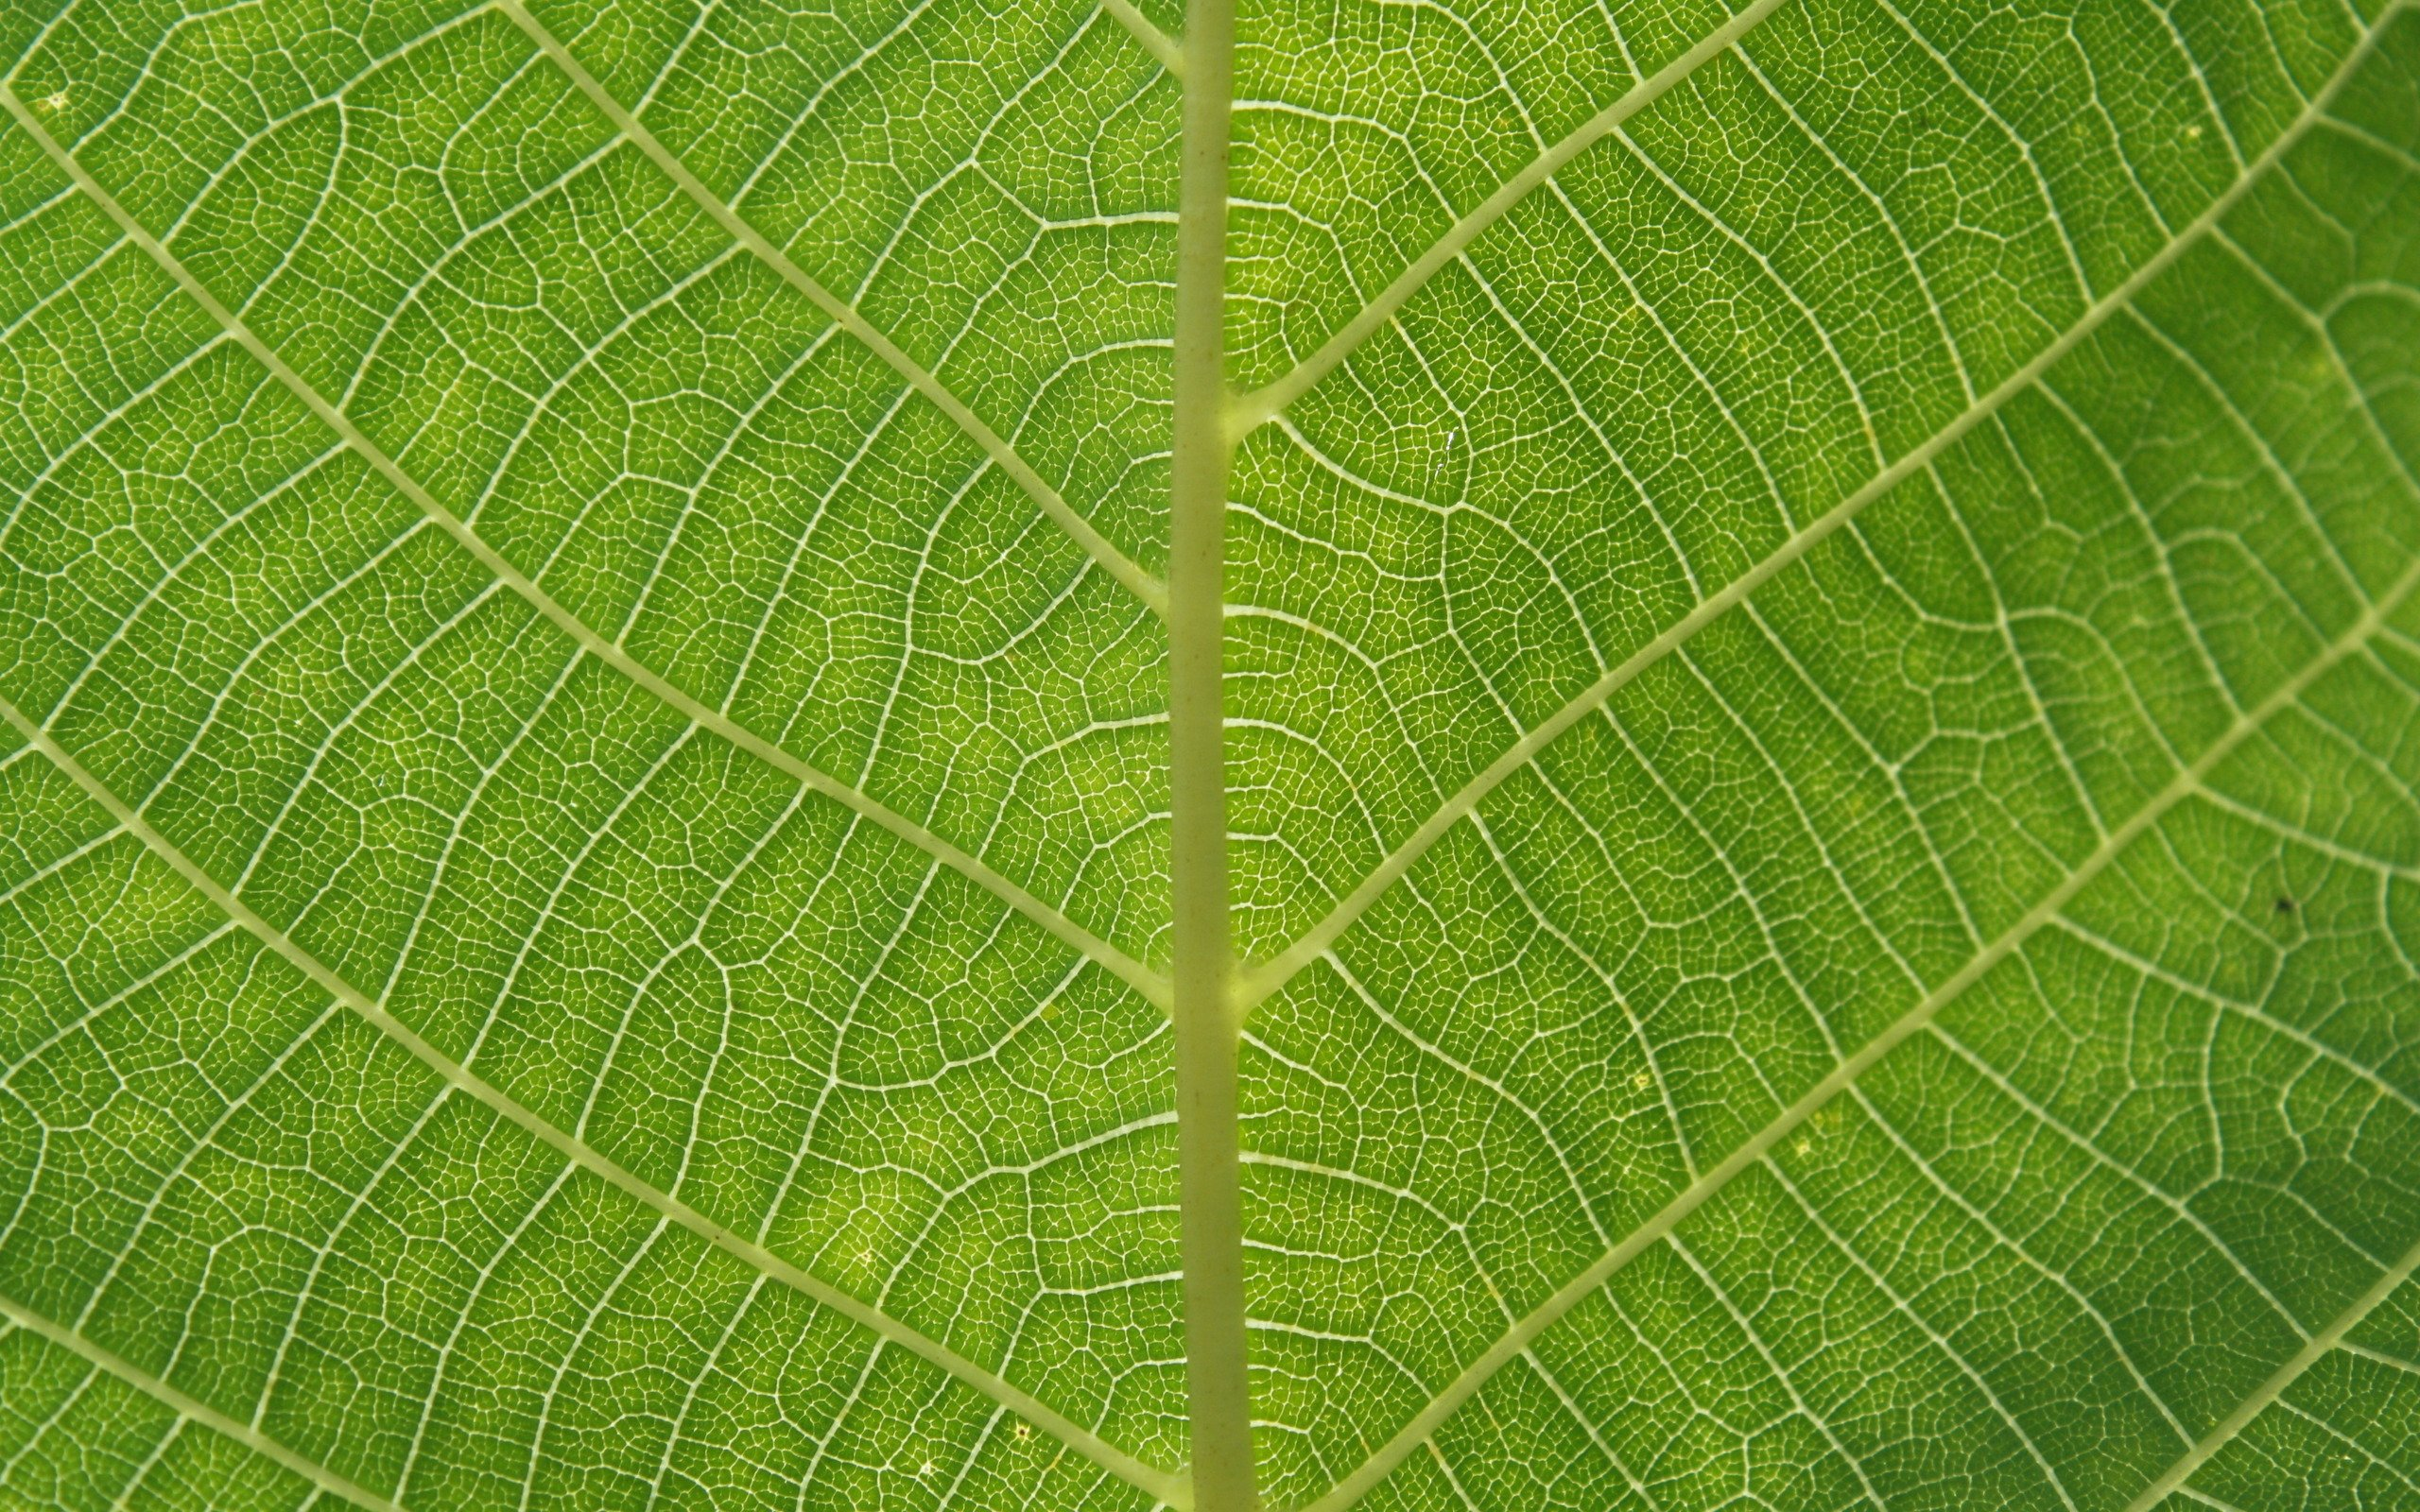 leaves-texture-background-8429-8752-hd-wallpapers